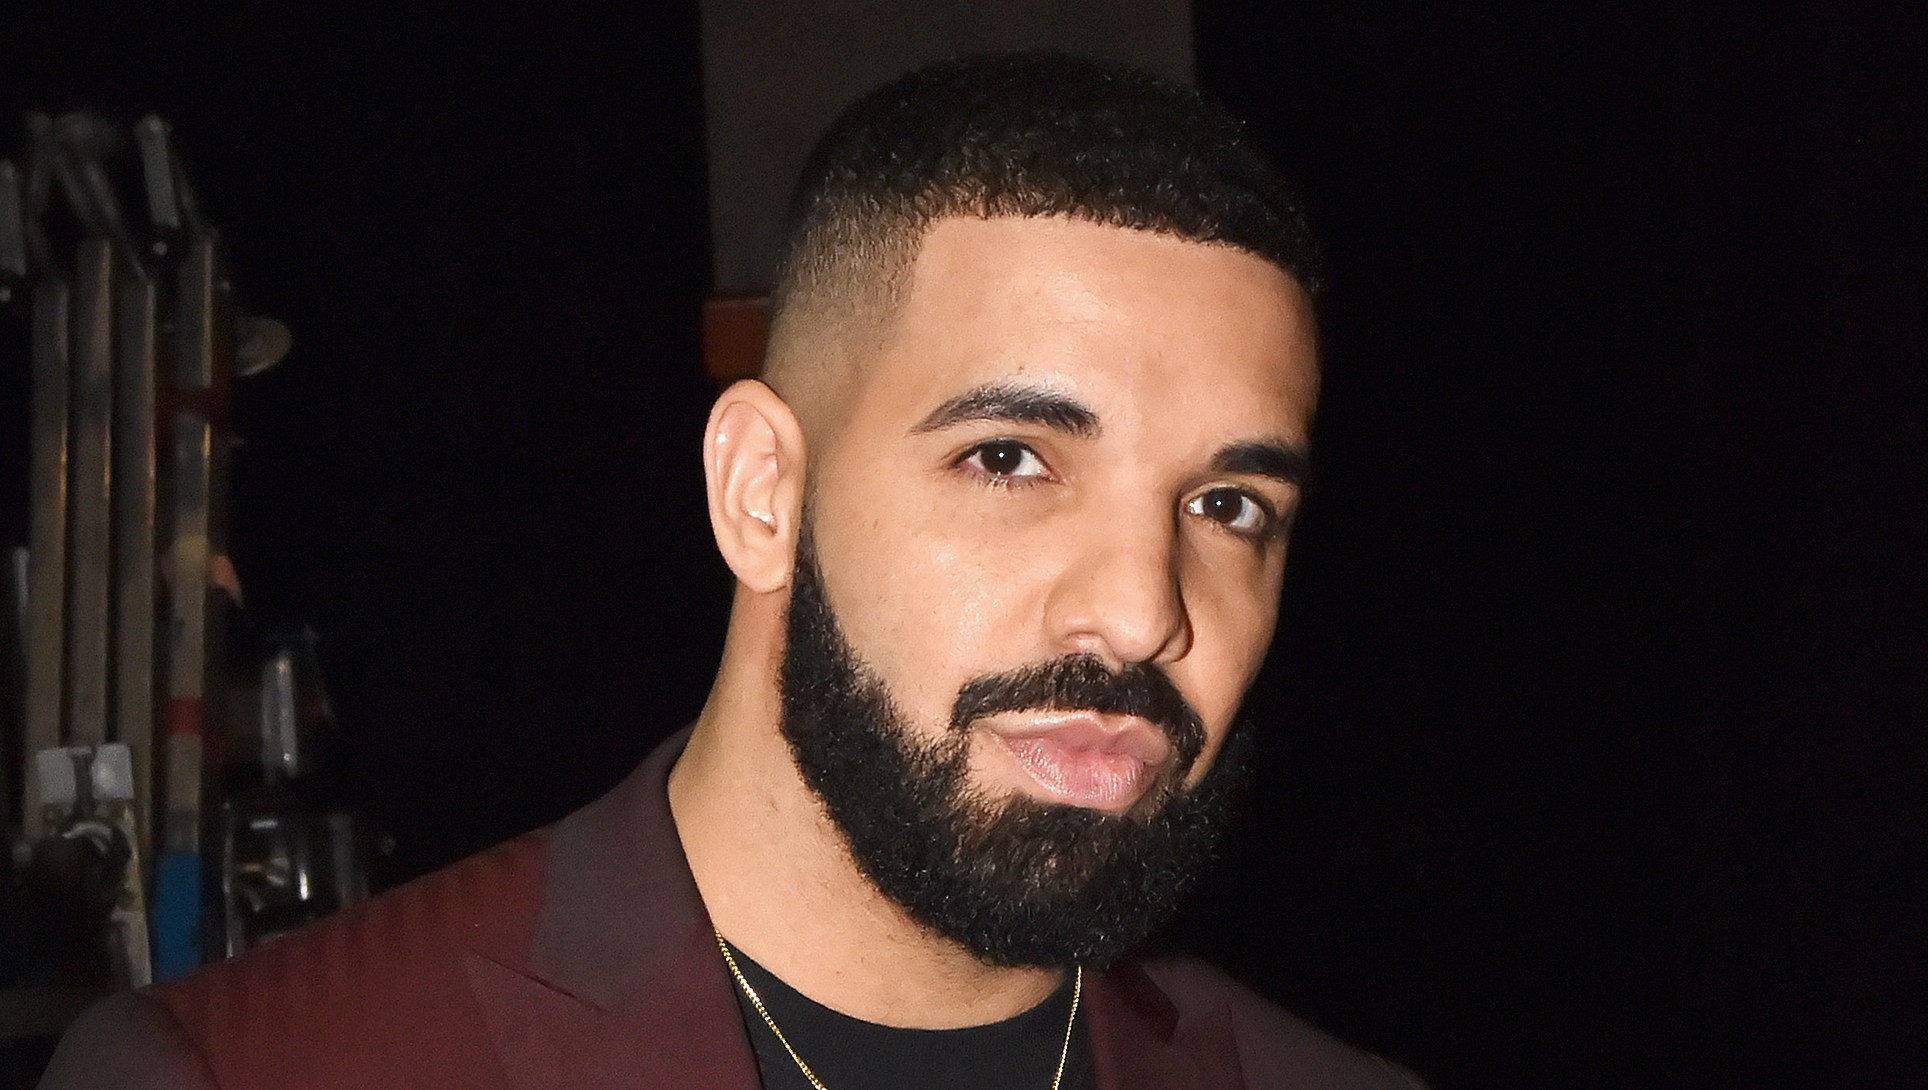 Drake-Plastic-Surgery-Rumors-Shirtless-Photo